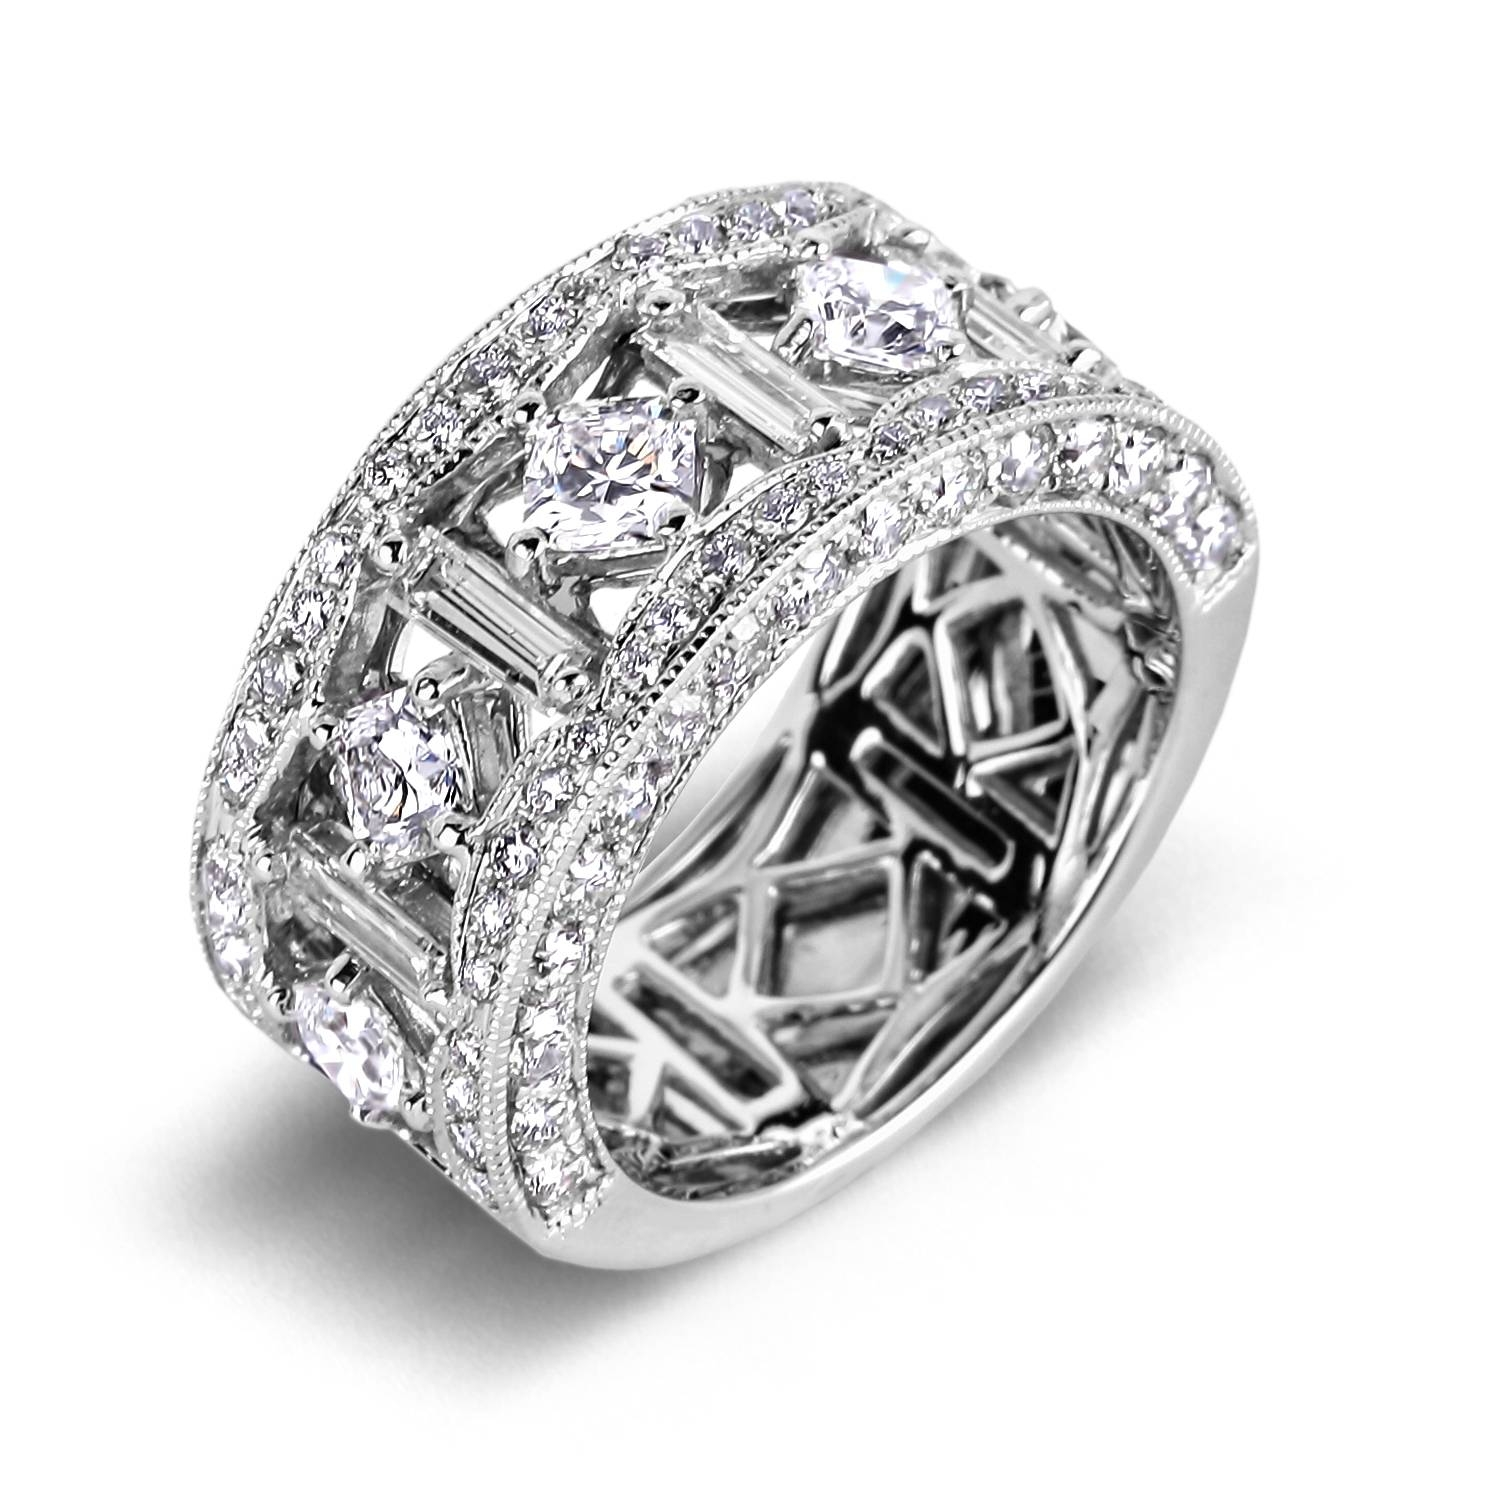 Wedding Anniversary Rings Diamonds | Wedding Ideas Within Most Up To Date Diamond Wedding Anniversary Rings (View 23 of 25)